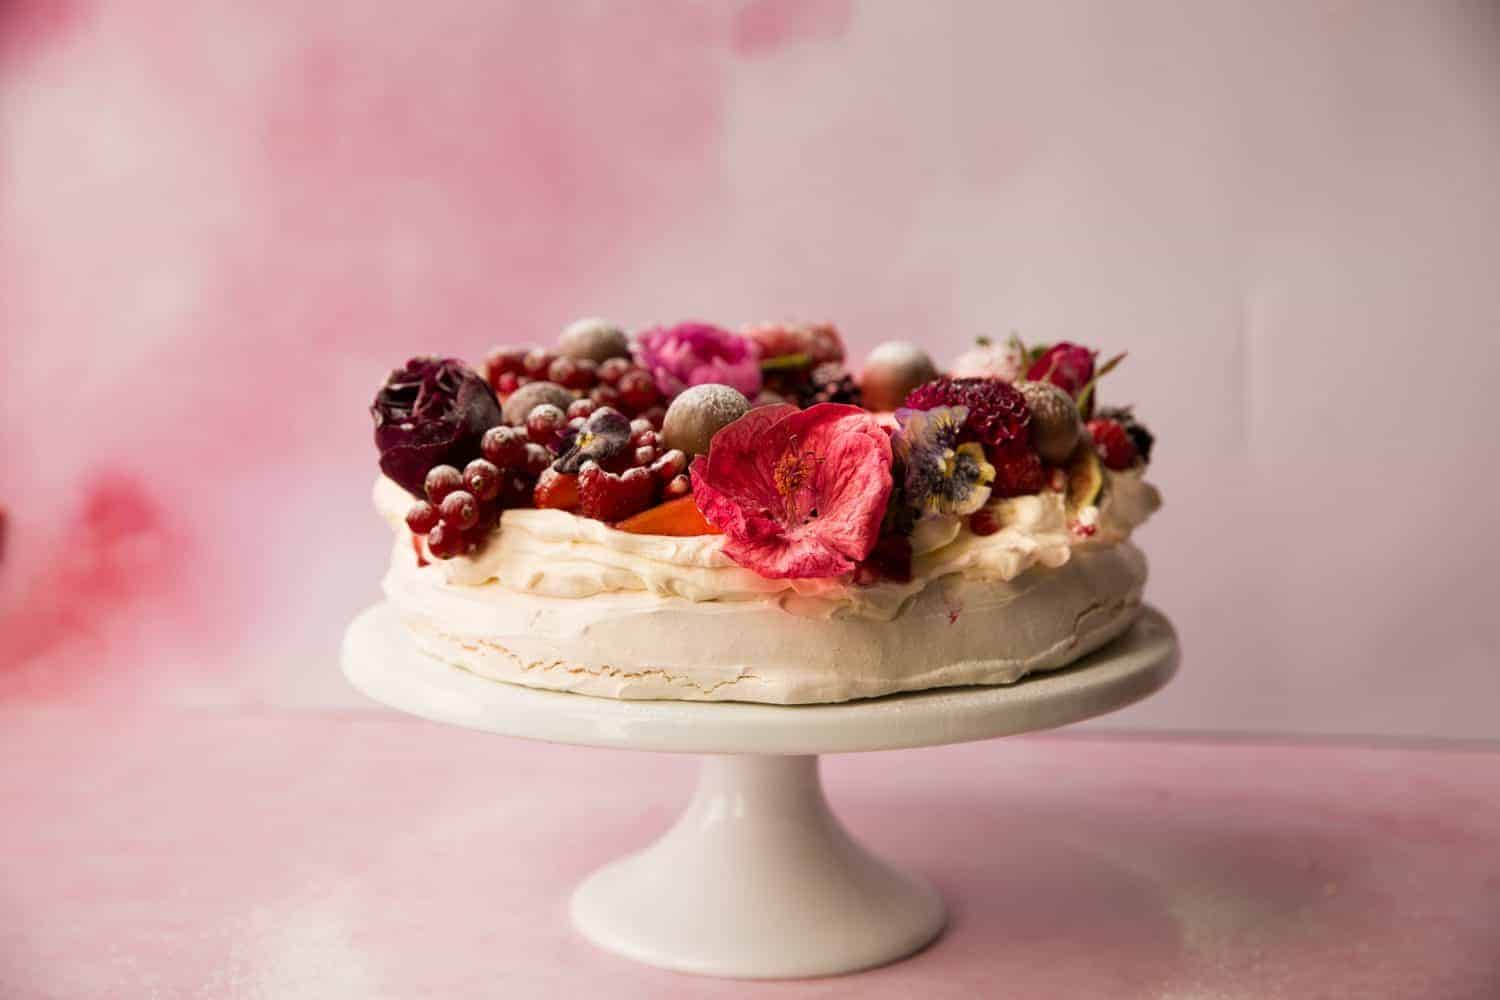 Pink background with a  pavlova dessert on a white cake stand.